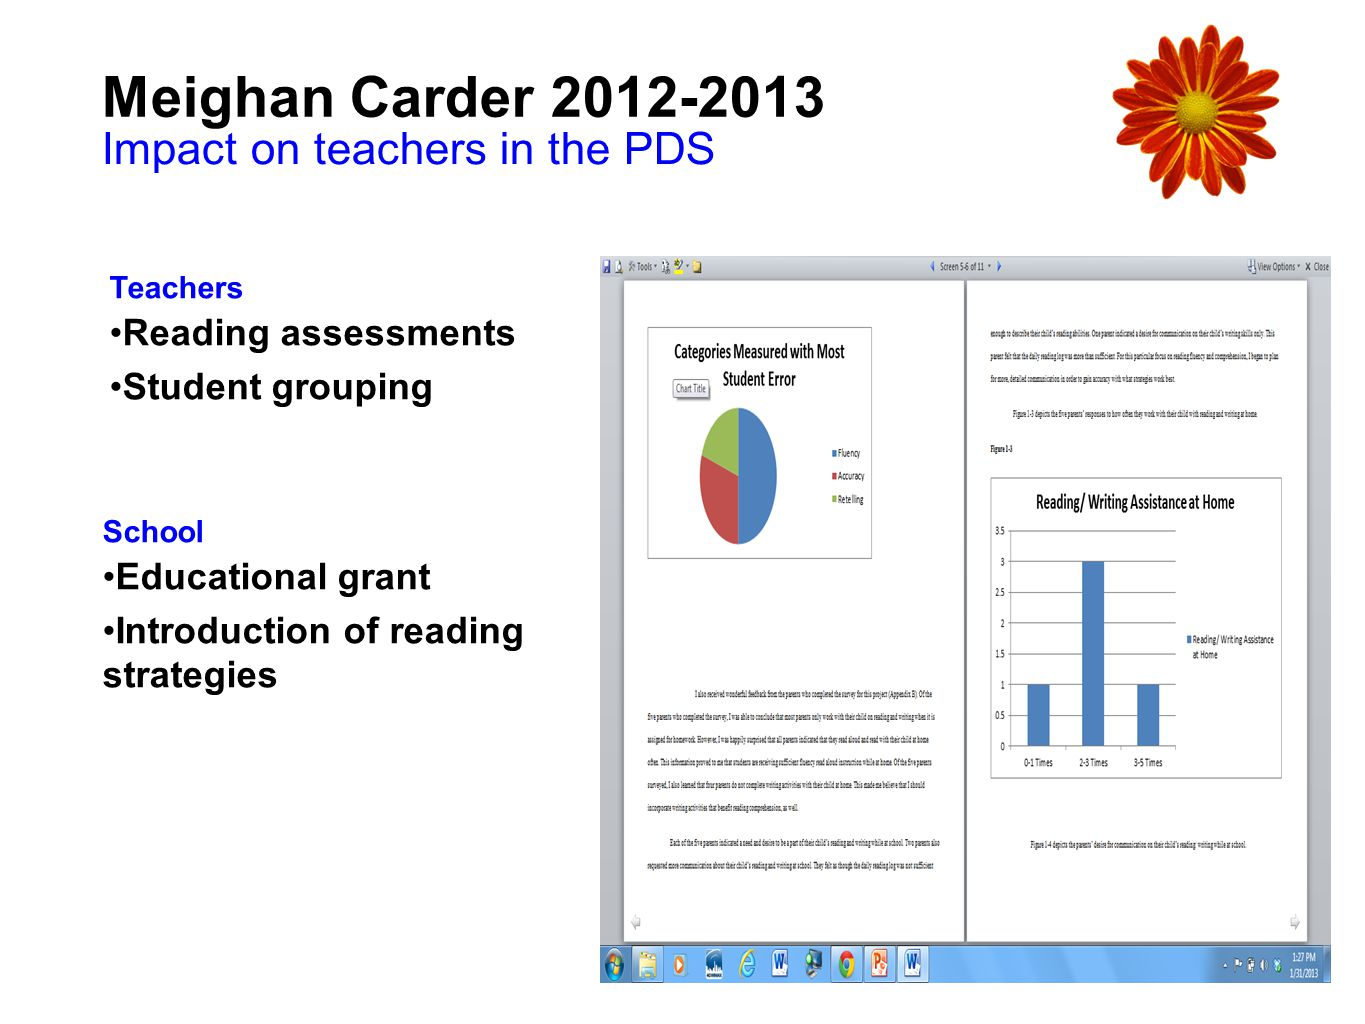 Meighan Carder 2012-2013 Impact on teachers in the PDS